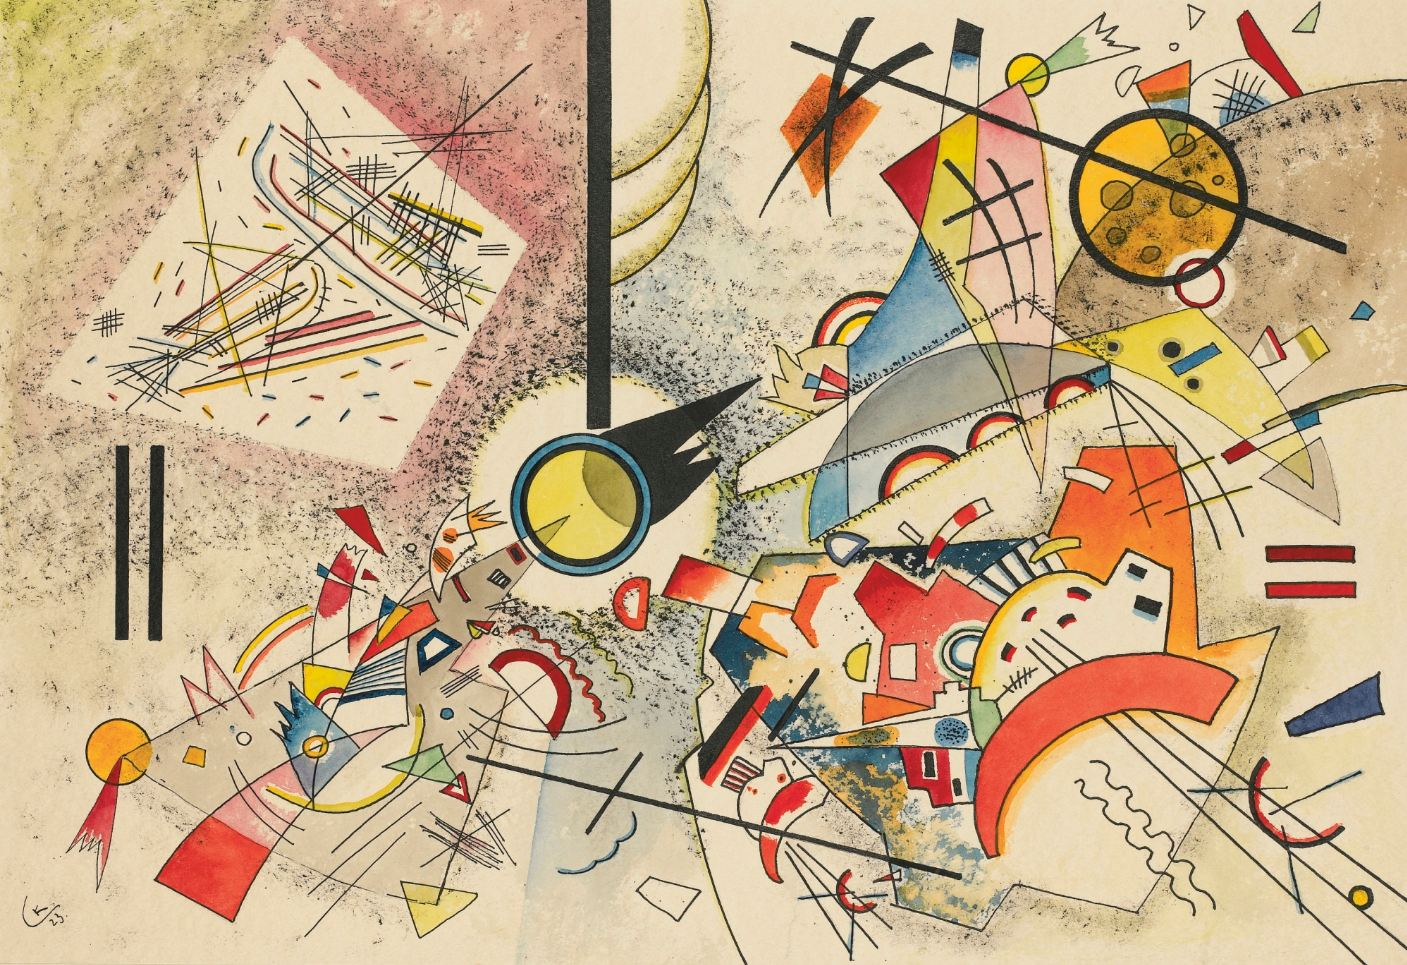 Kandinsky abtract masterpiece